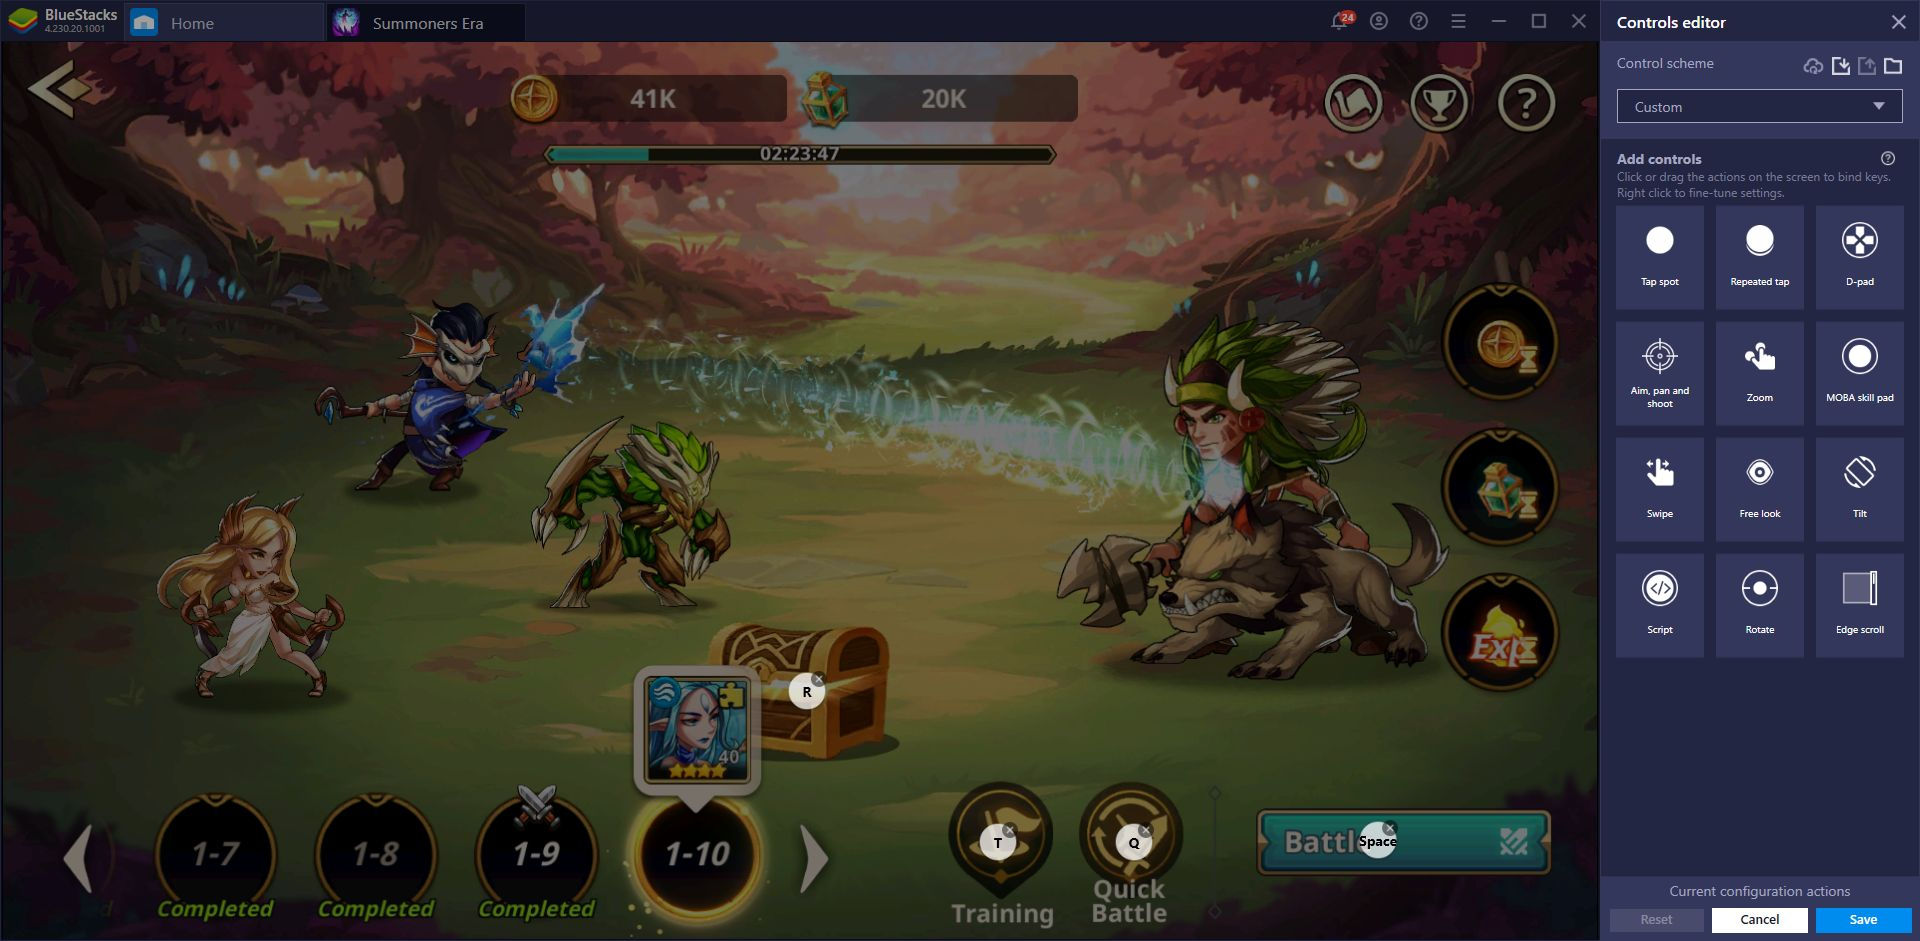 How to Play Summoners Era on PC with BlueStacks